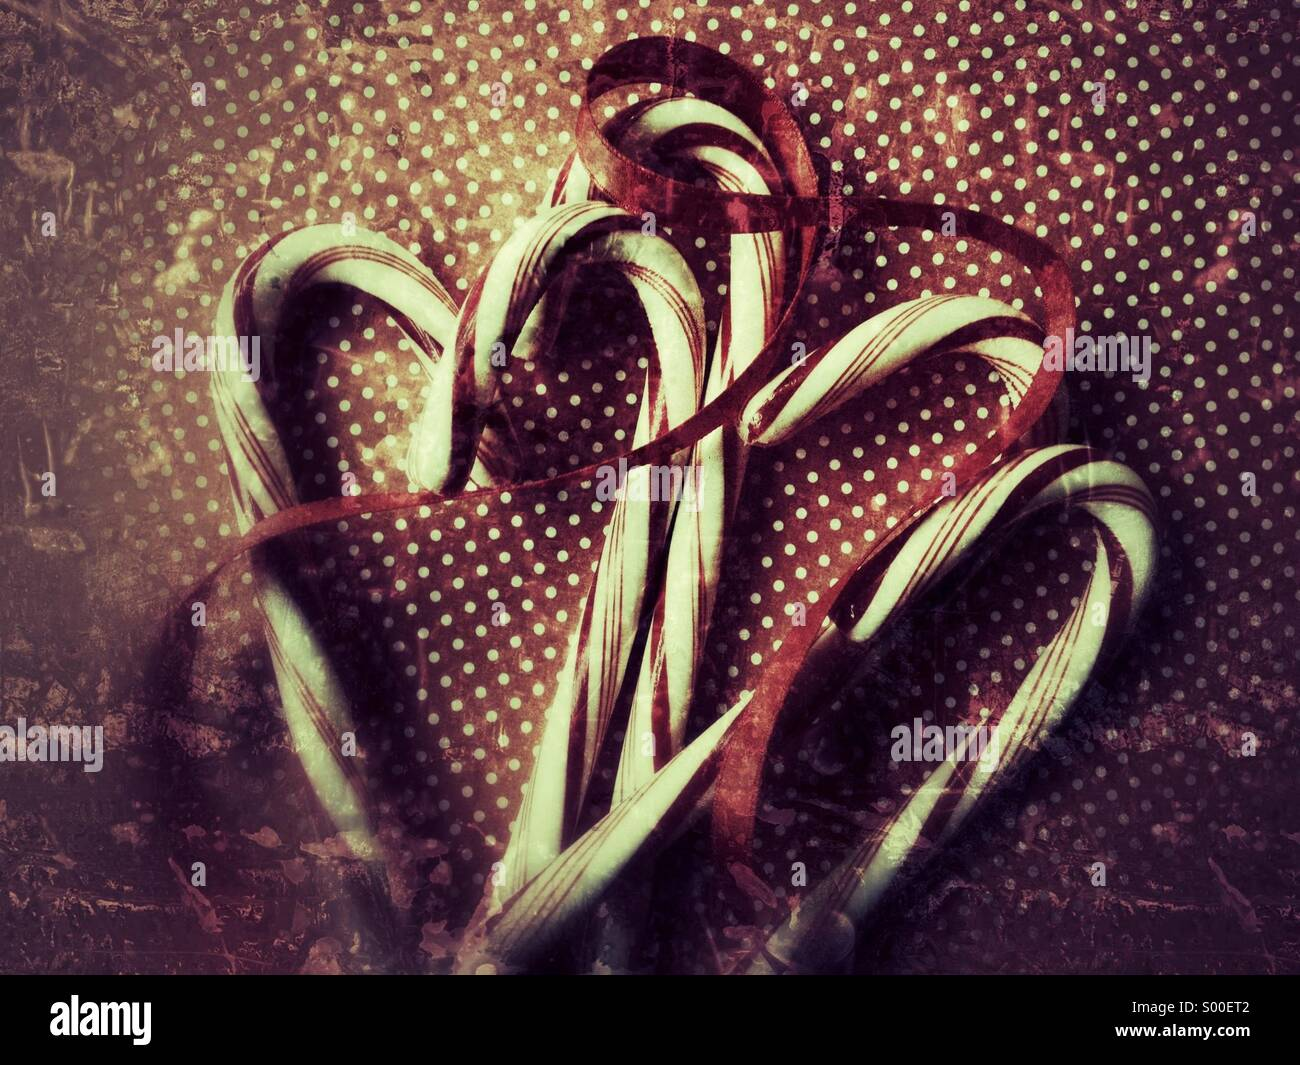 Grunge candy canes - Stock Image